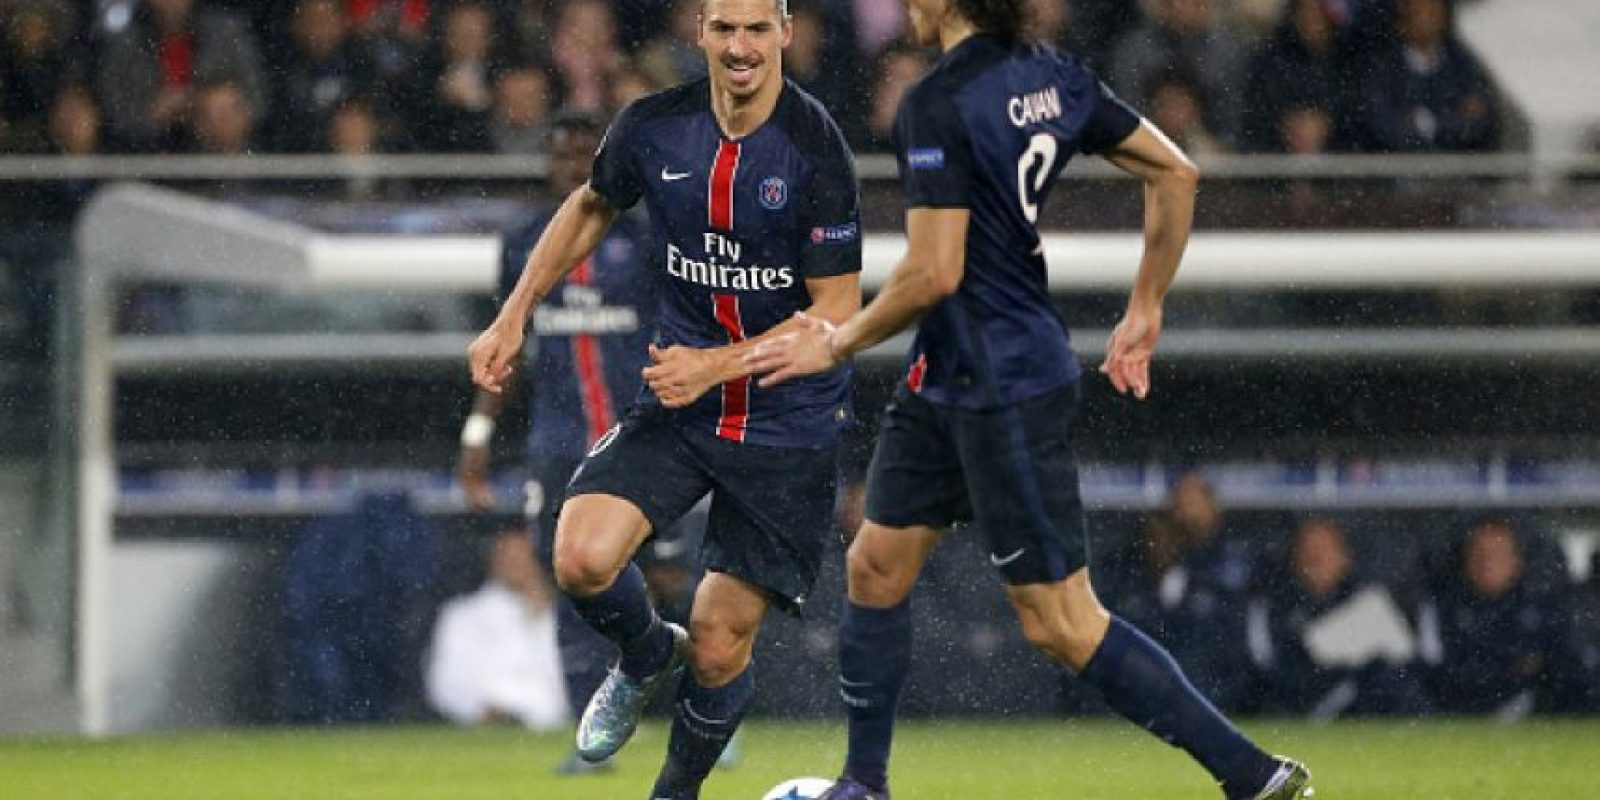 LIGUE 1: PSG (1) vs. Saint Etienne (4) en Parc des Princes Foto: Getty Images